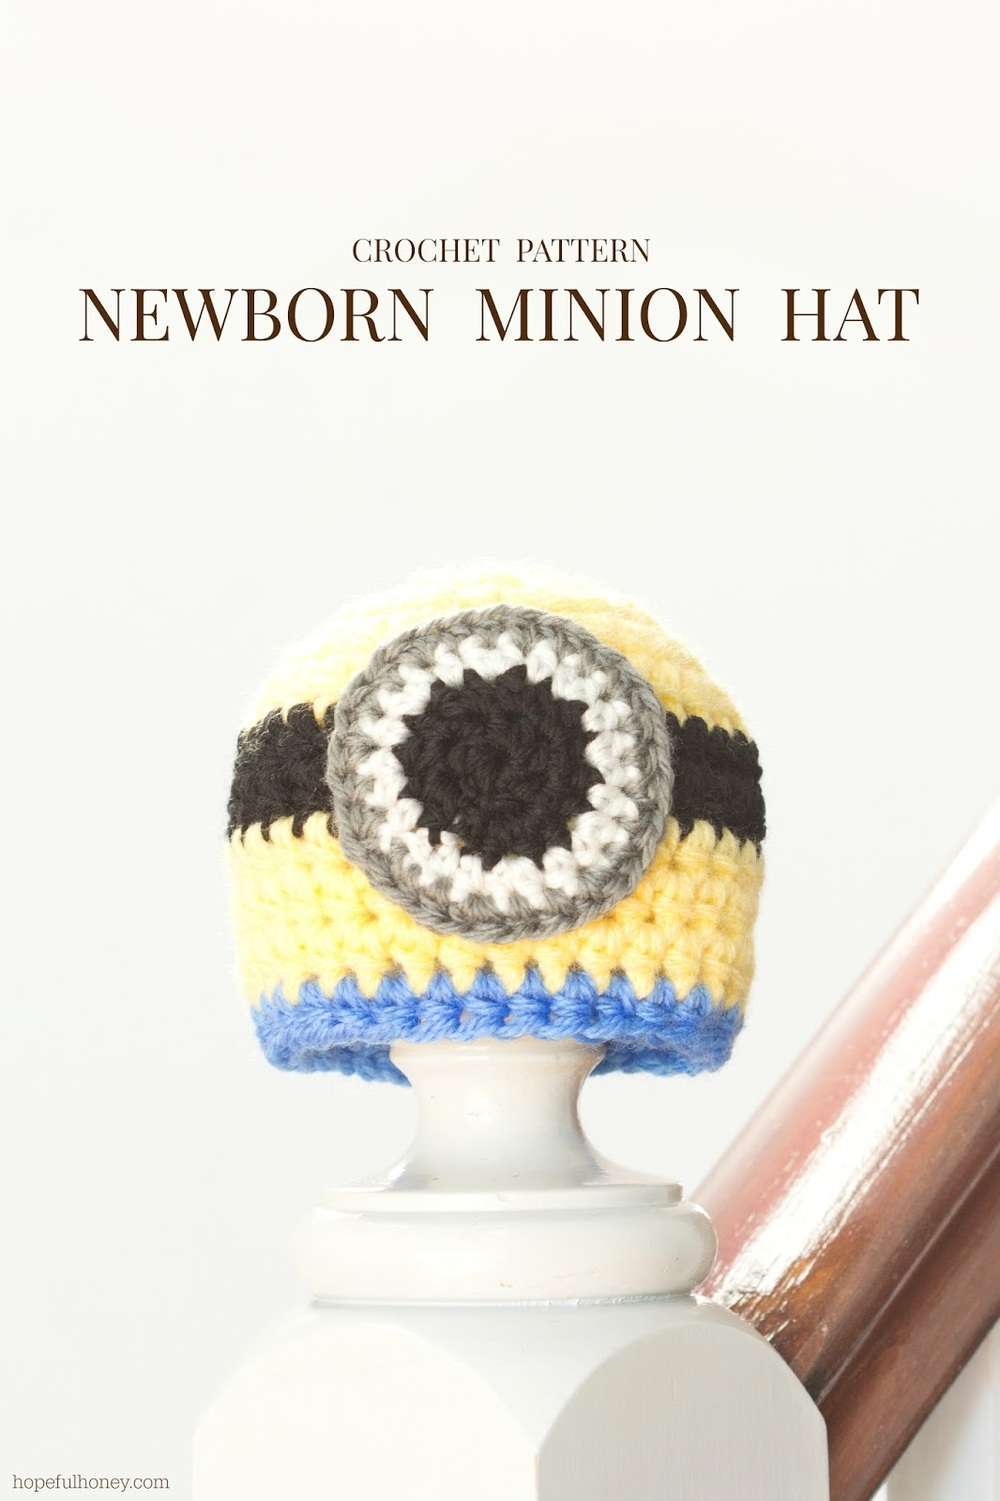 Crochet Hat Pattern Minion : Baby Minion Crochet Hat Pattern FaveCrafts.com